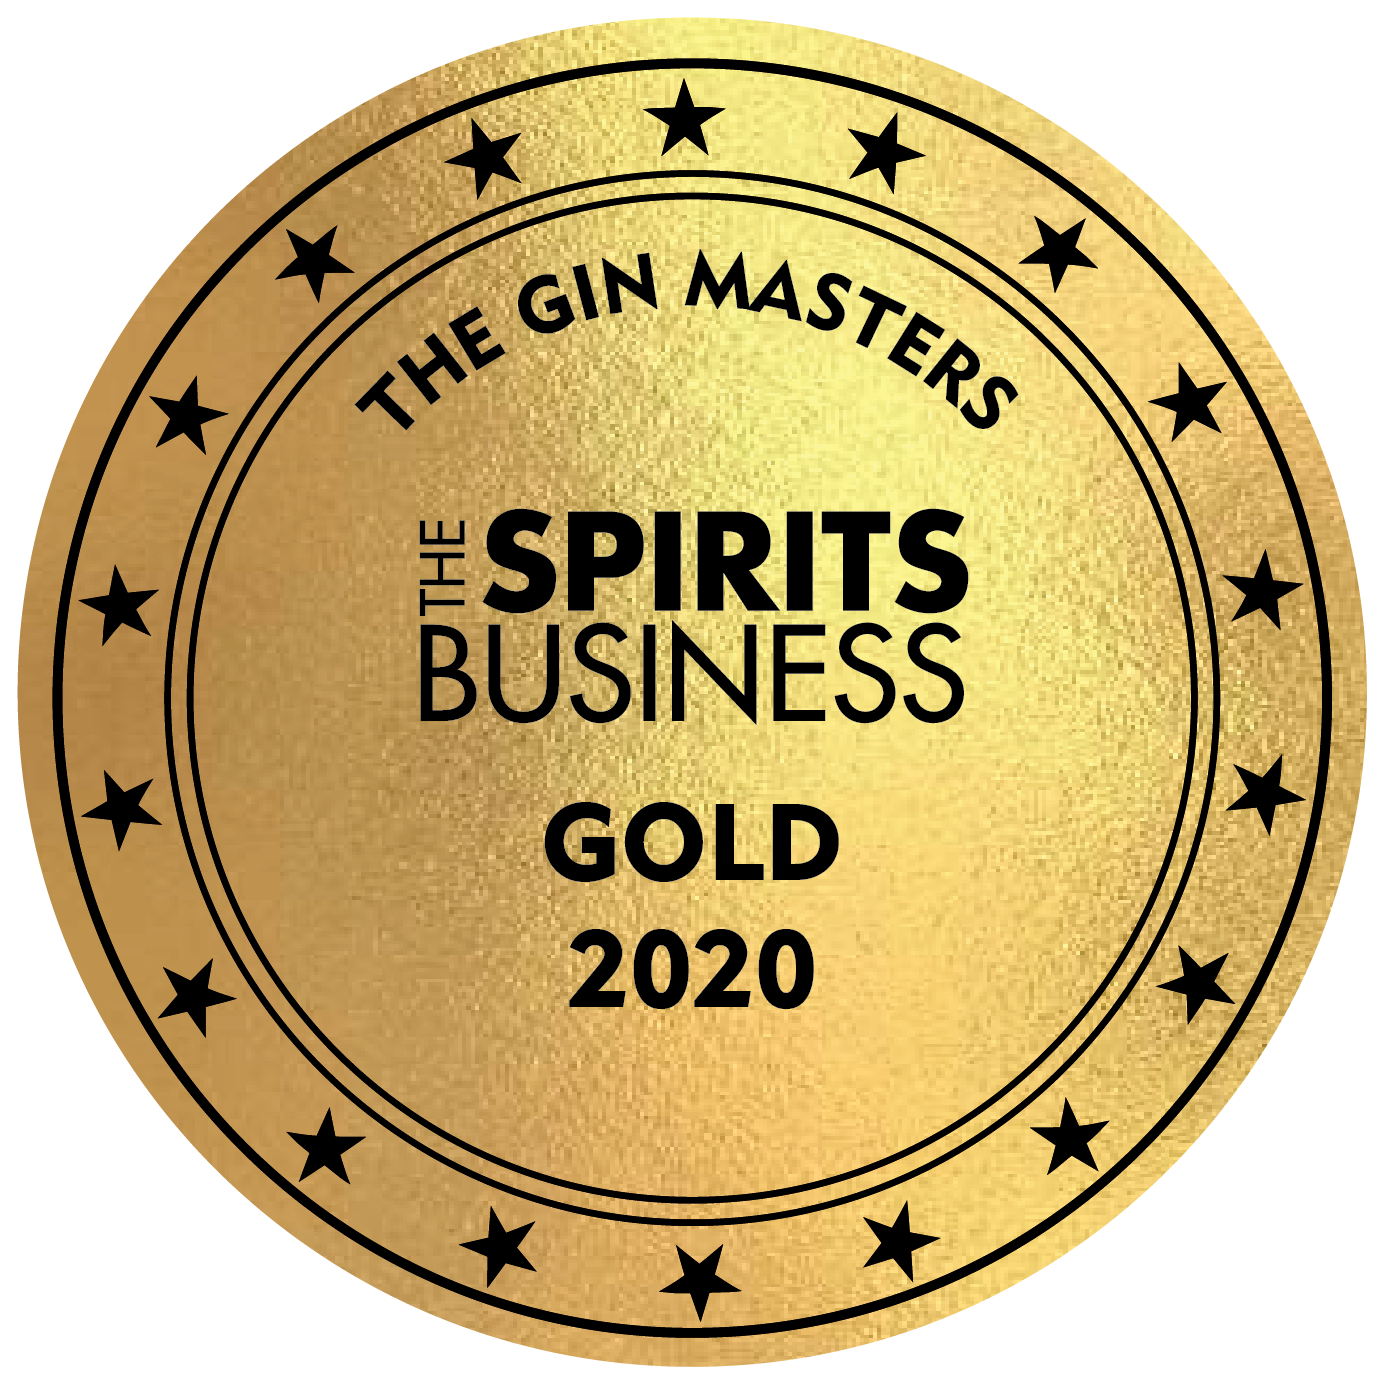 An Gold award won by the Stillery amsterdam which reads The Spirit Business Gold 2020